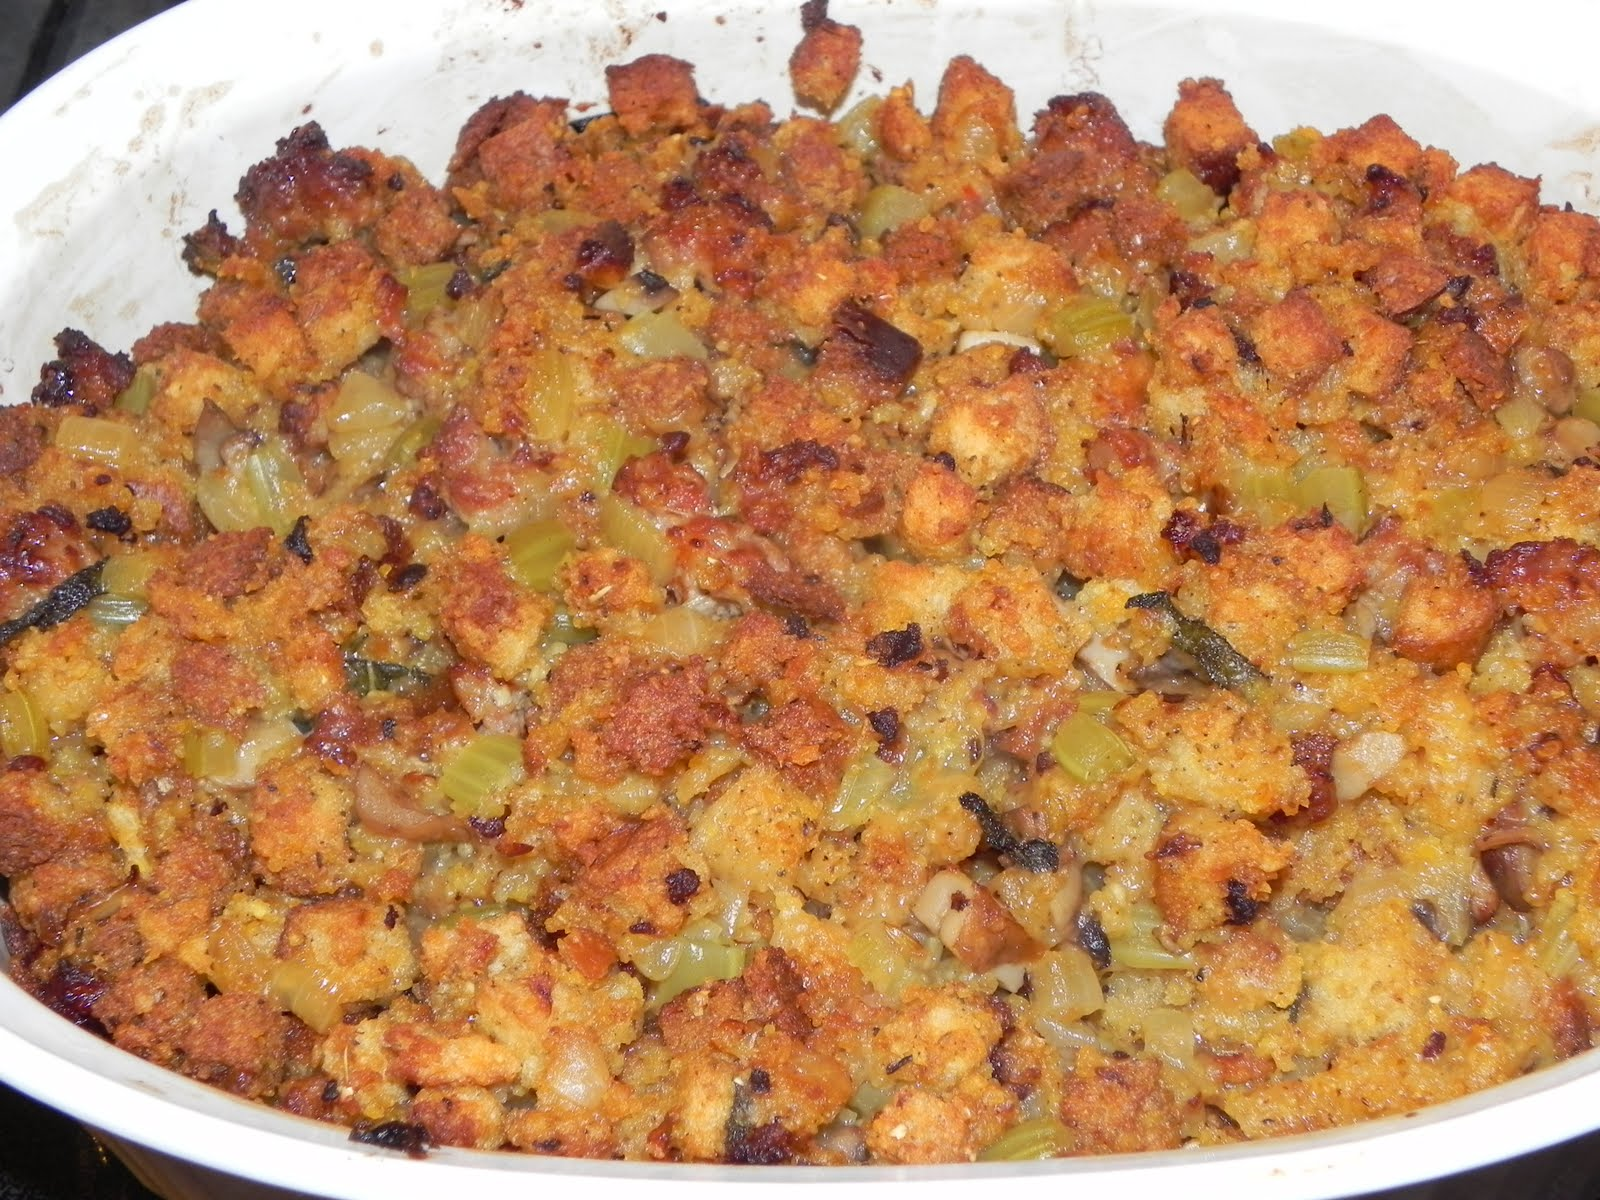 Farrah's Food Adventures: Spicy Sausage Stuffing